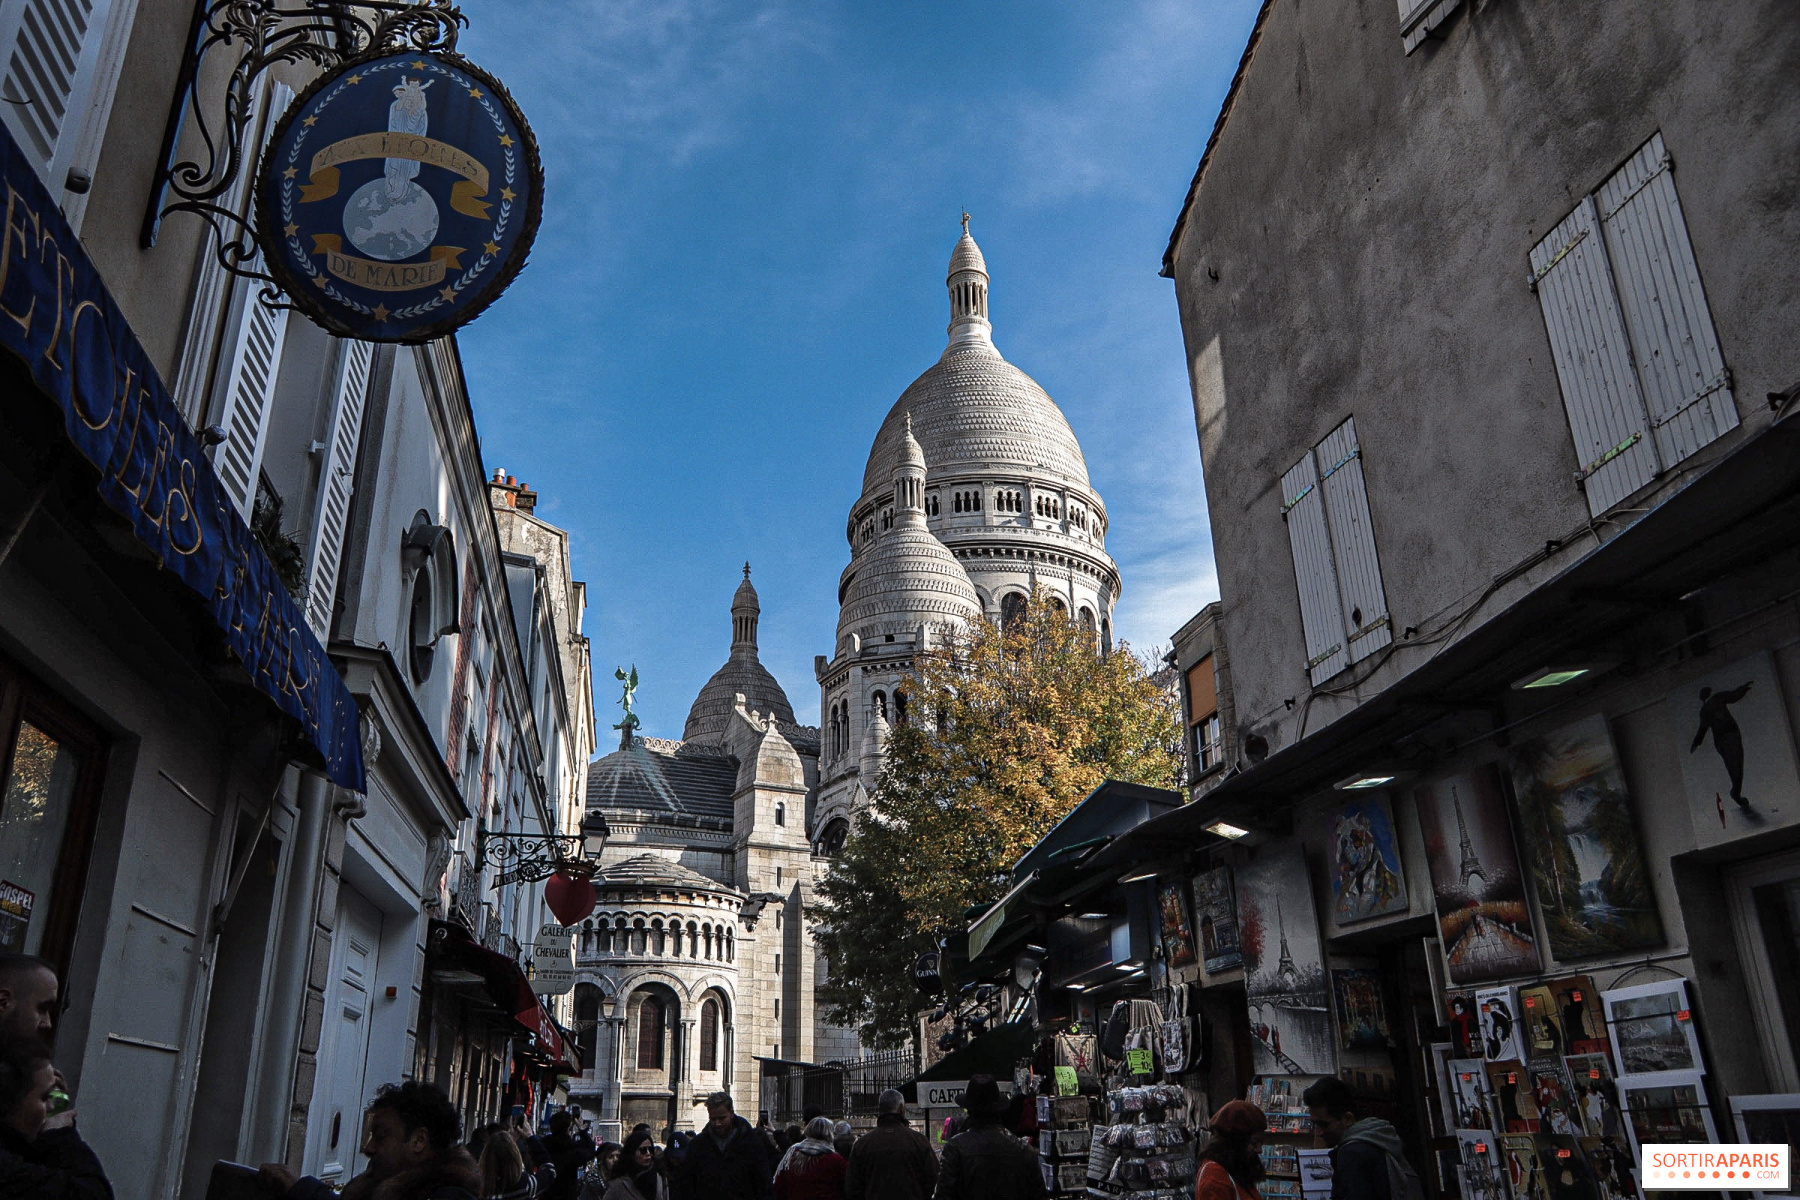 This Monday November 11 2019 In Paris Public Holiday